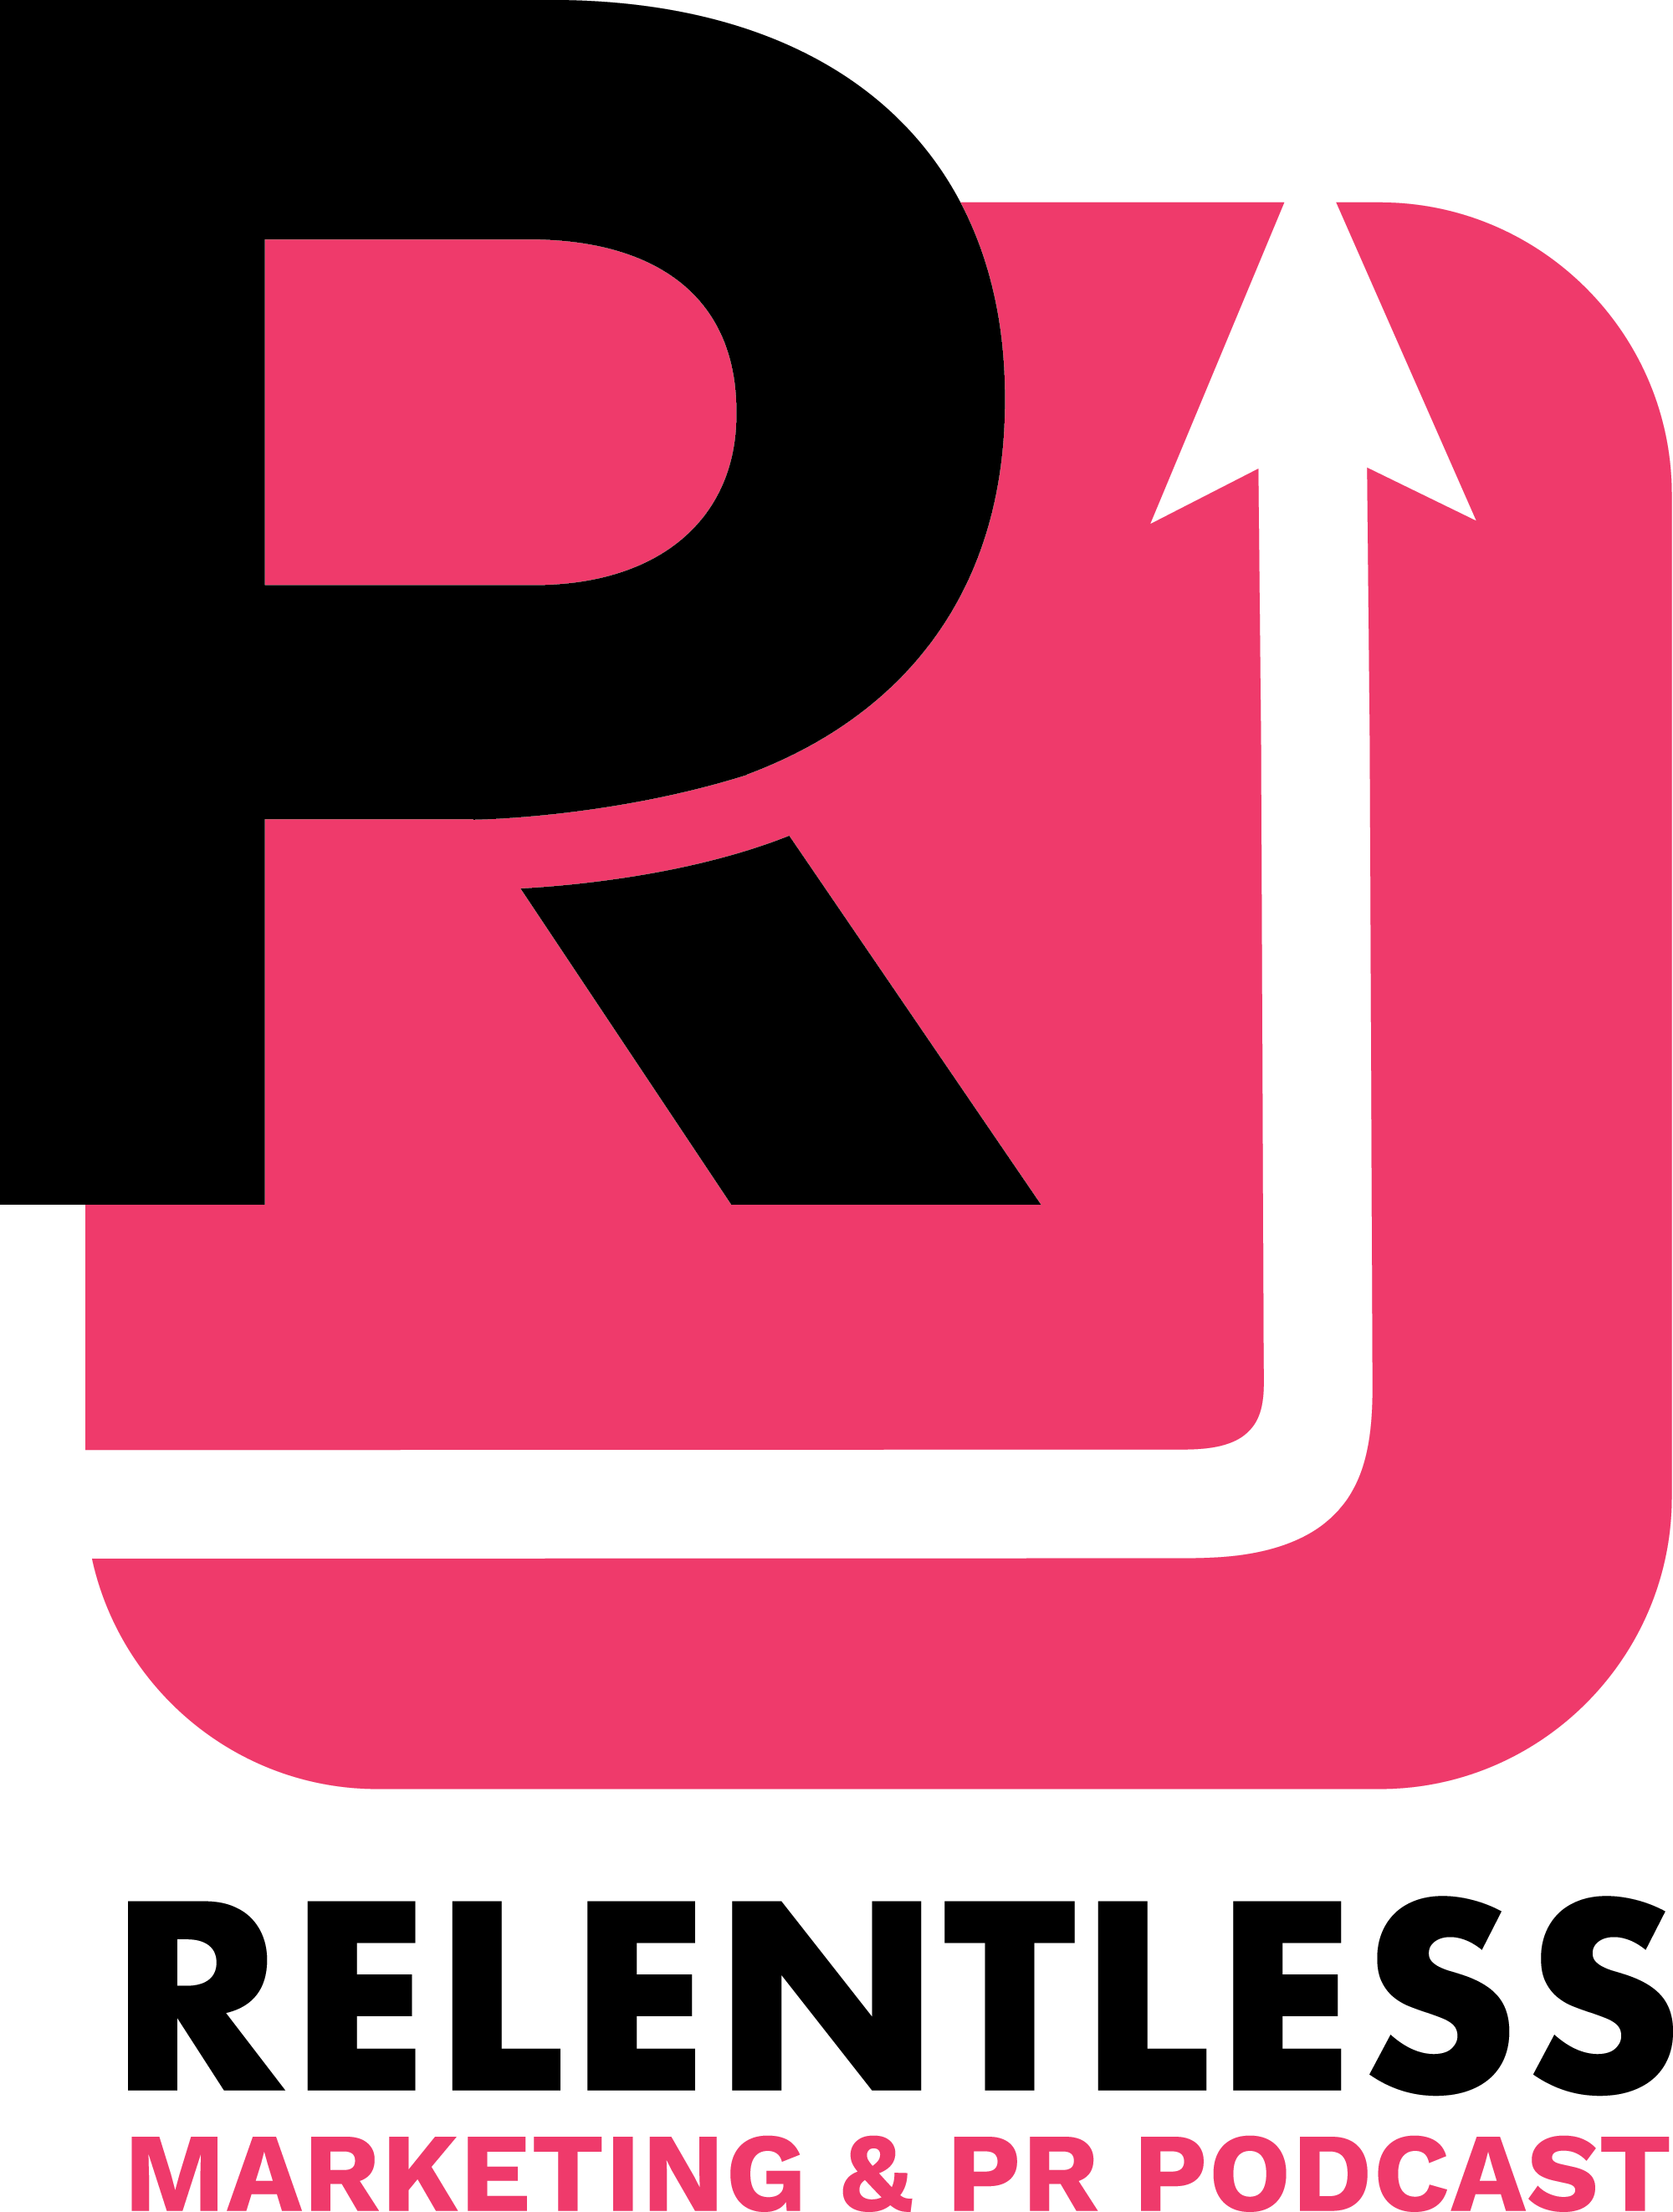 Pink and black logo for Relentless Marketing Podcast